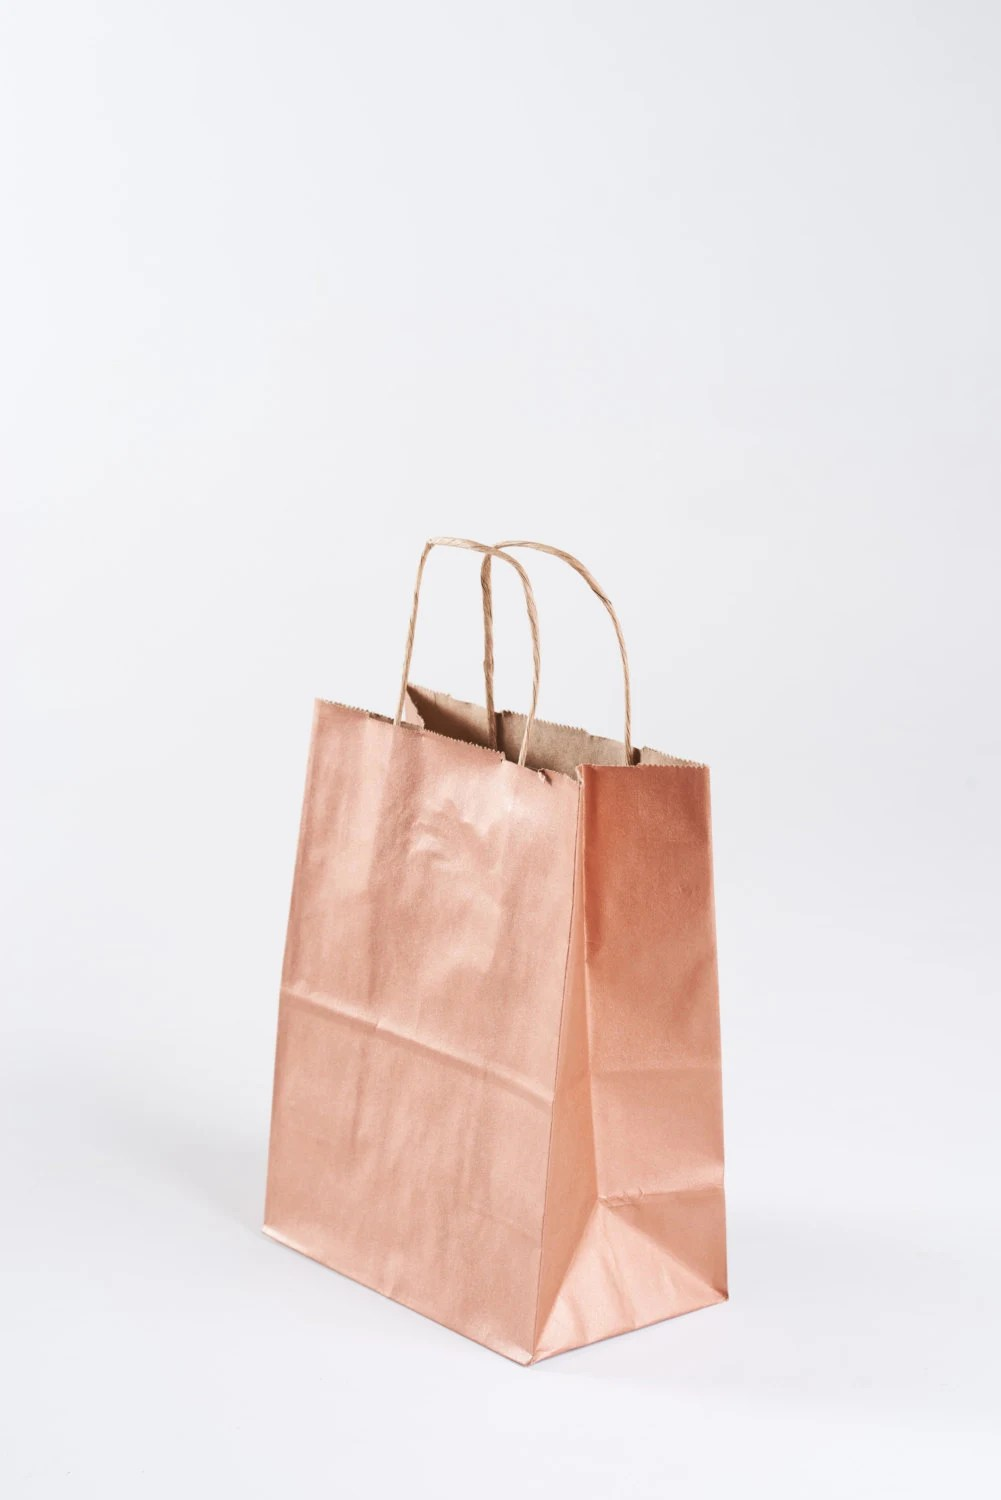 Paper Gift Bags Wholesale 75 Rose Gold Gift Bags With Handles For Wedding Guests Welcome Bag Party Favor Bulk Wholesale Kraft Paper Bag Metallic Copper Rose Gold